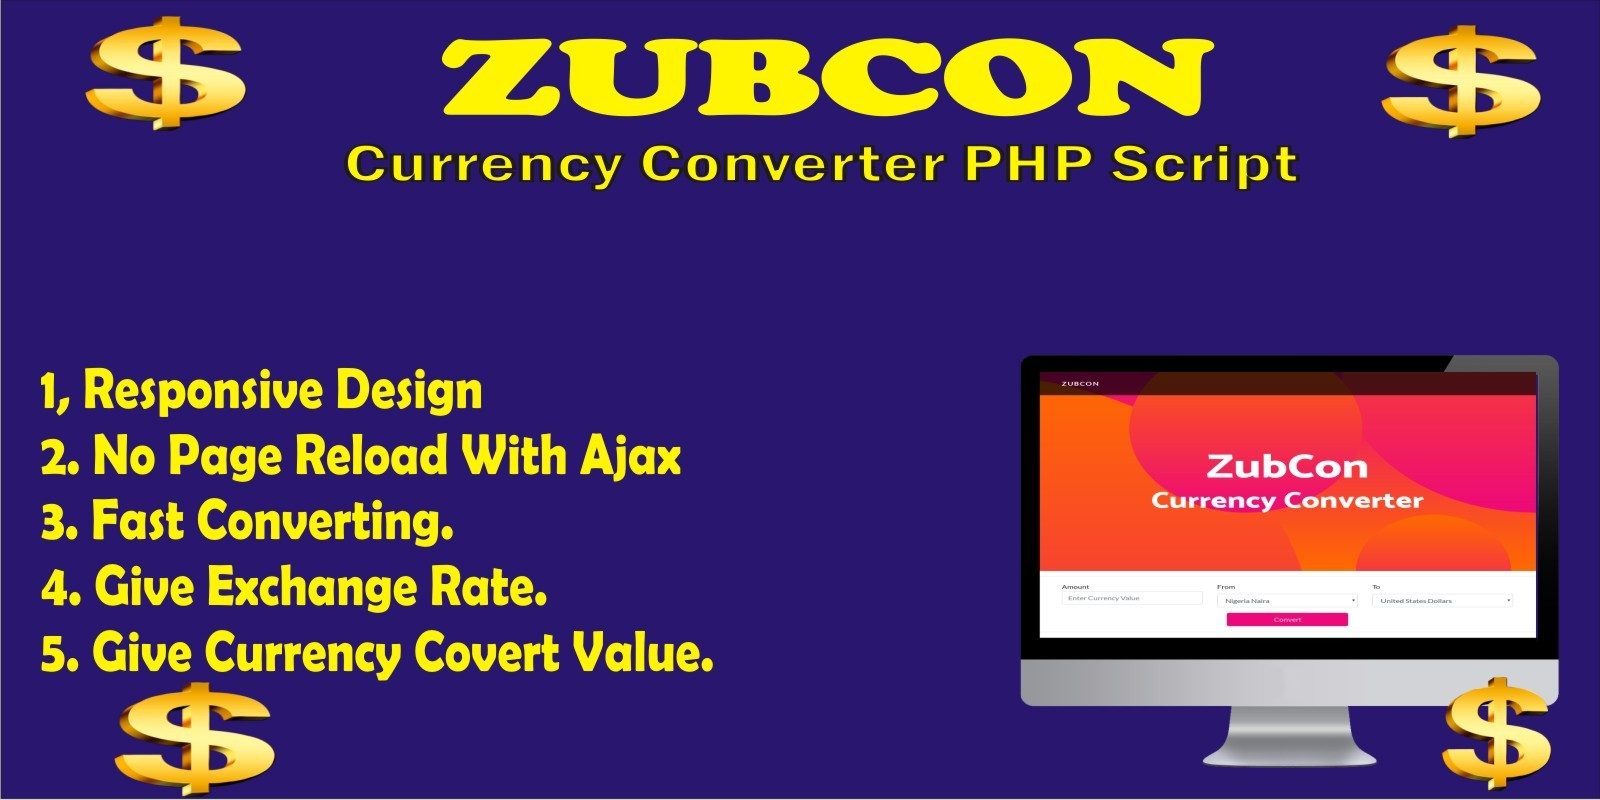 Zubcon Currency Converter PHP